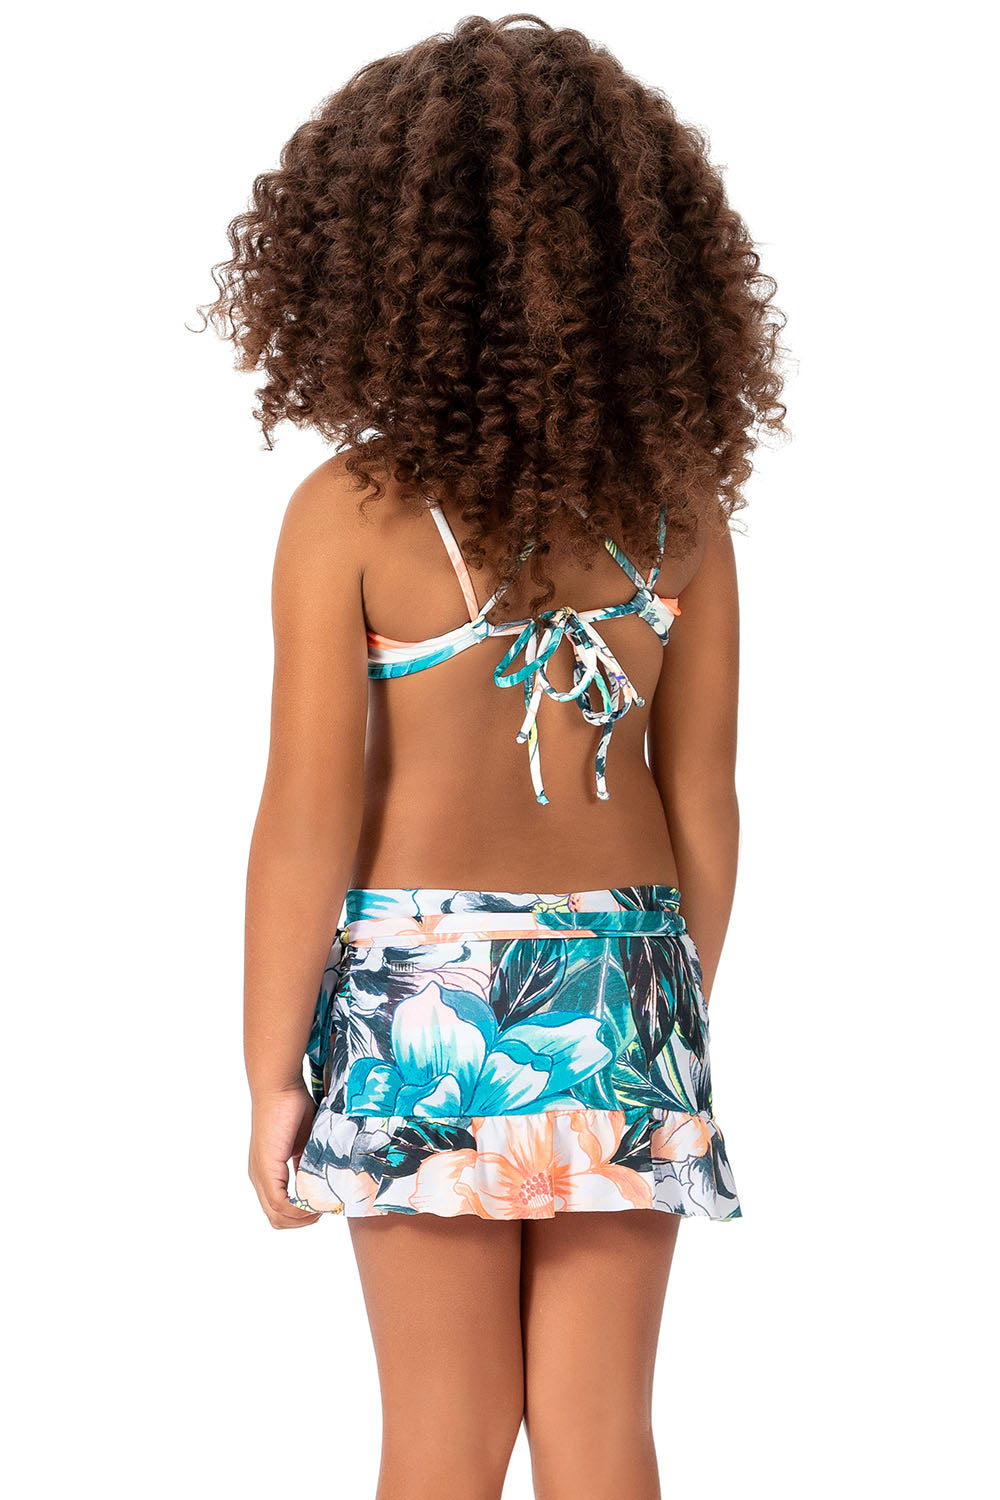 Fresh Blossom Kids Pareo Skirt 2